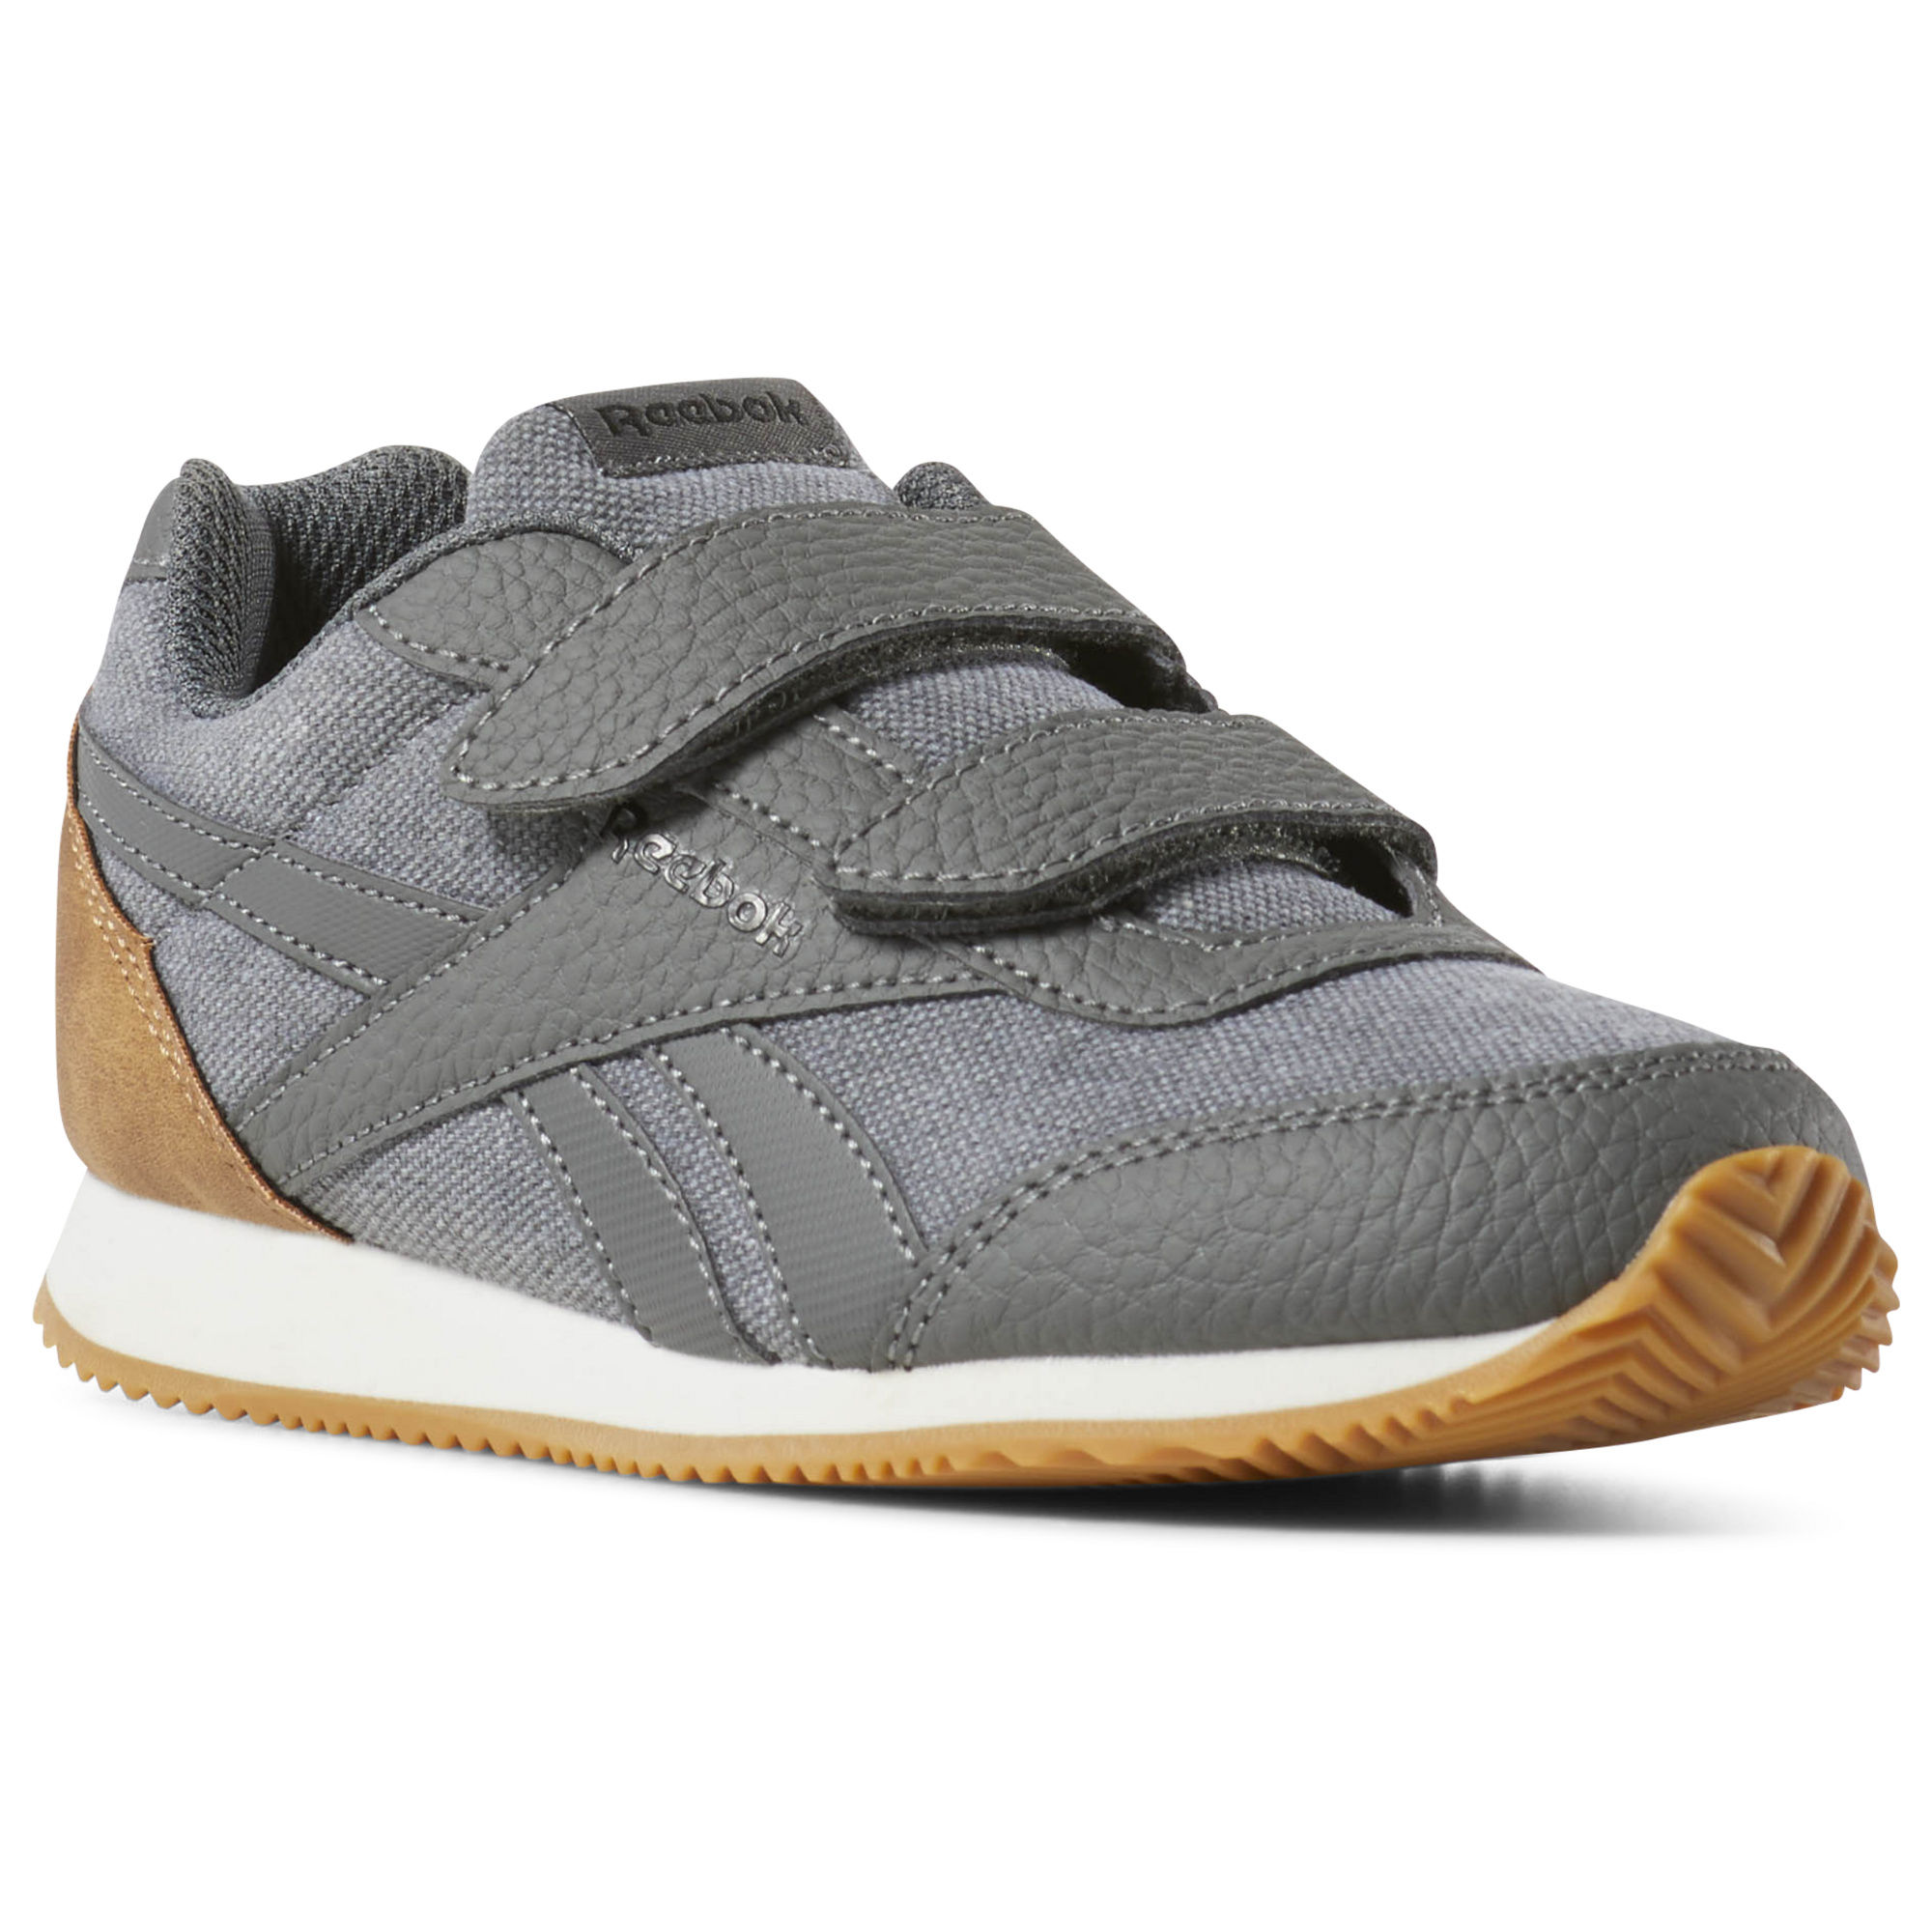 Reebok Royal CLJOG 2 2V Boys Grey/Black/White Sneakers (744VGUEN)